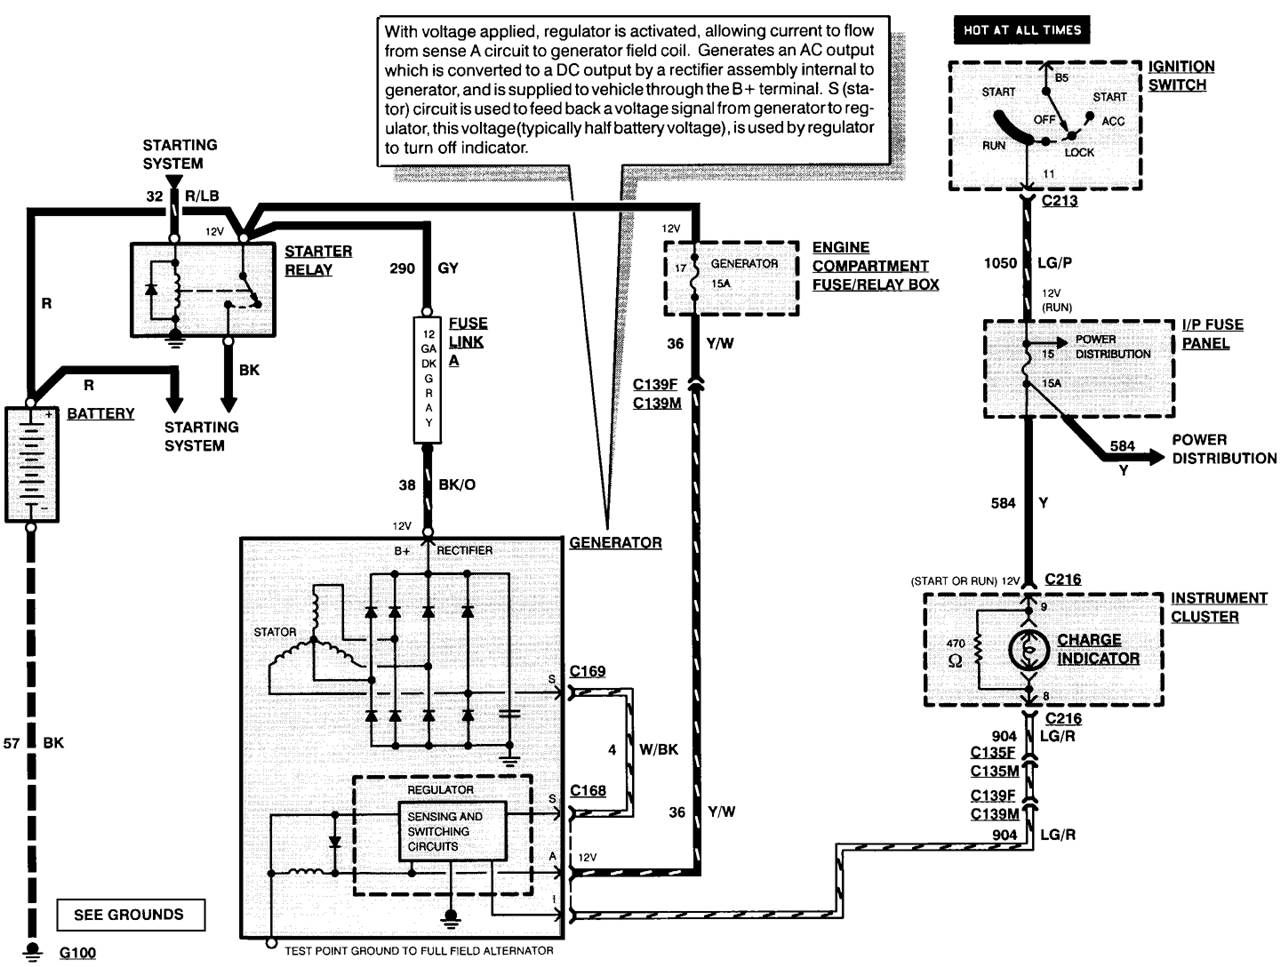 Ford alternator wiring diagram internal regulator ford alternator wiring diagrams carsut understand cars and wiring diagram for an alternator at gsmx.co